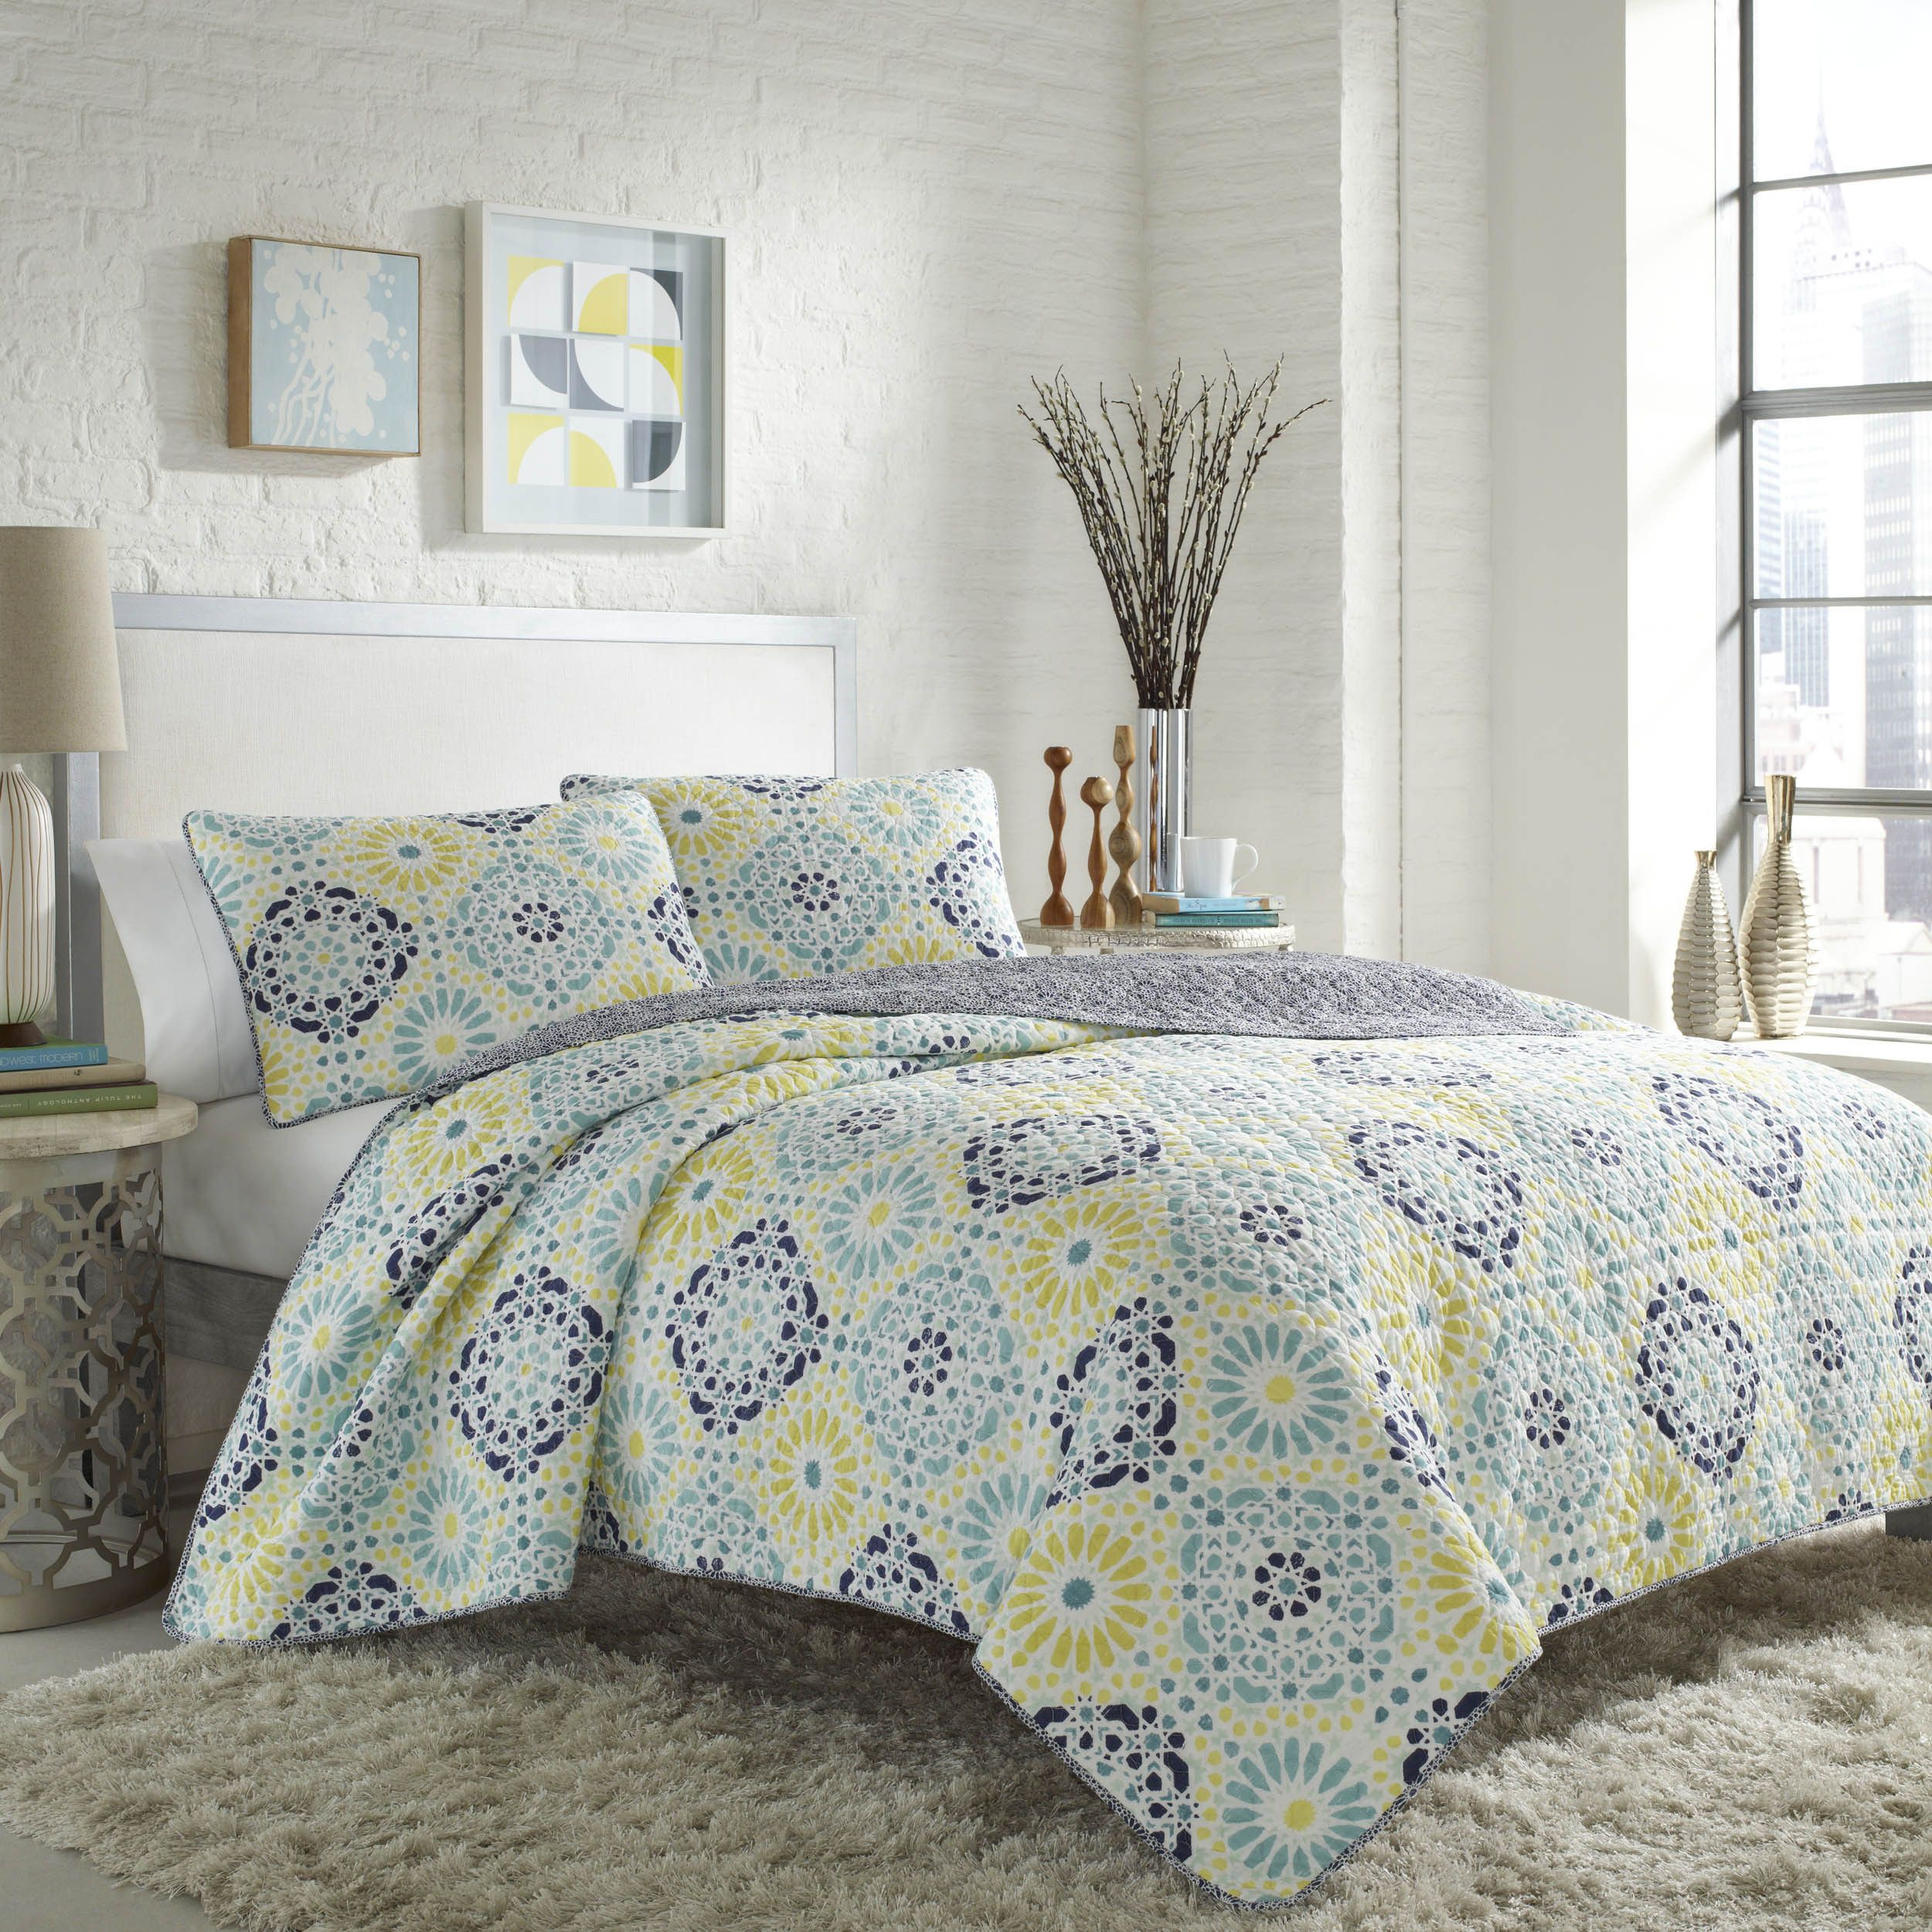 let the sunshine into your bedroom with this bright comforter set  - let the sunshine into your bedroom with this bright comforter setdecorated with a darling